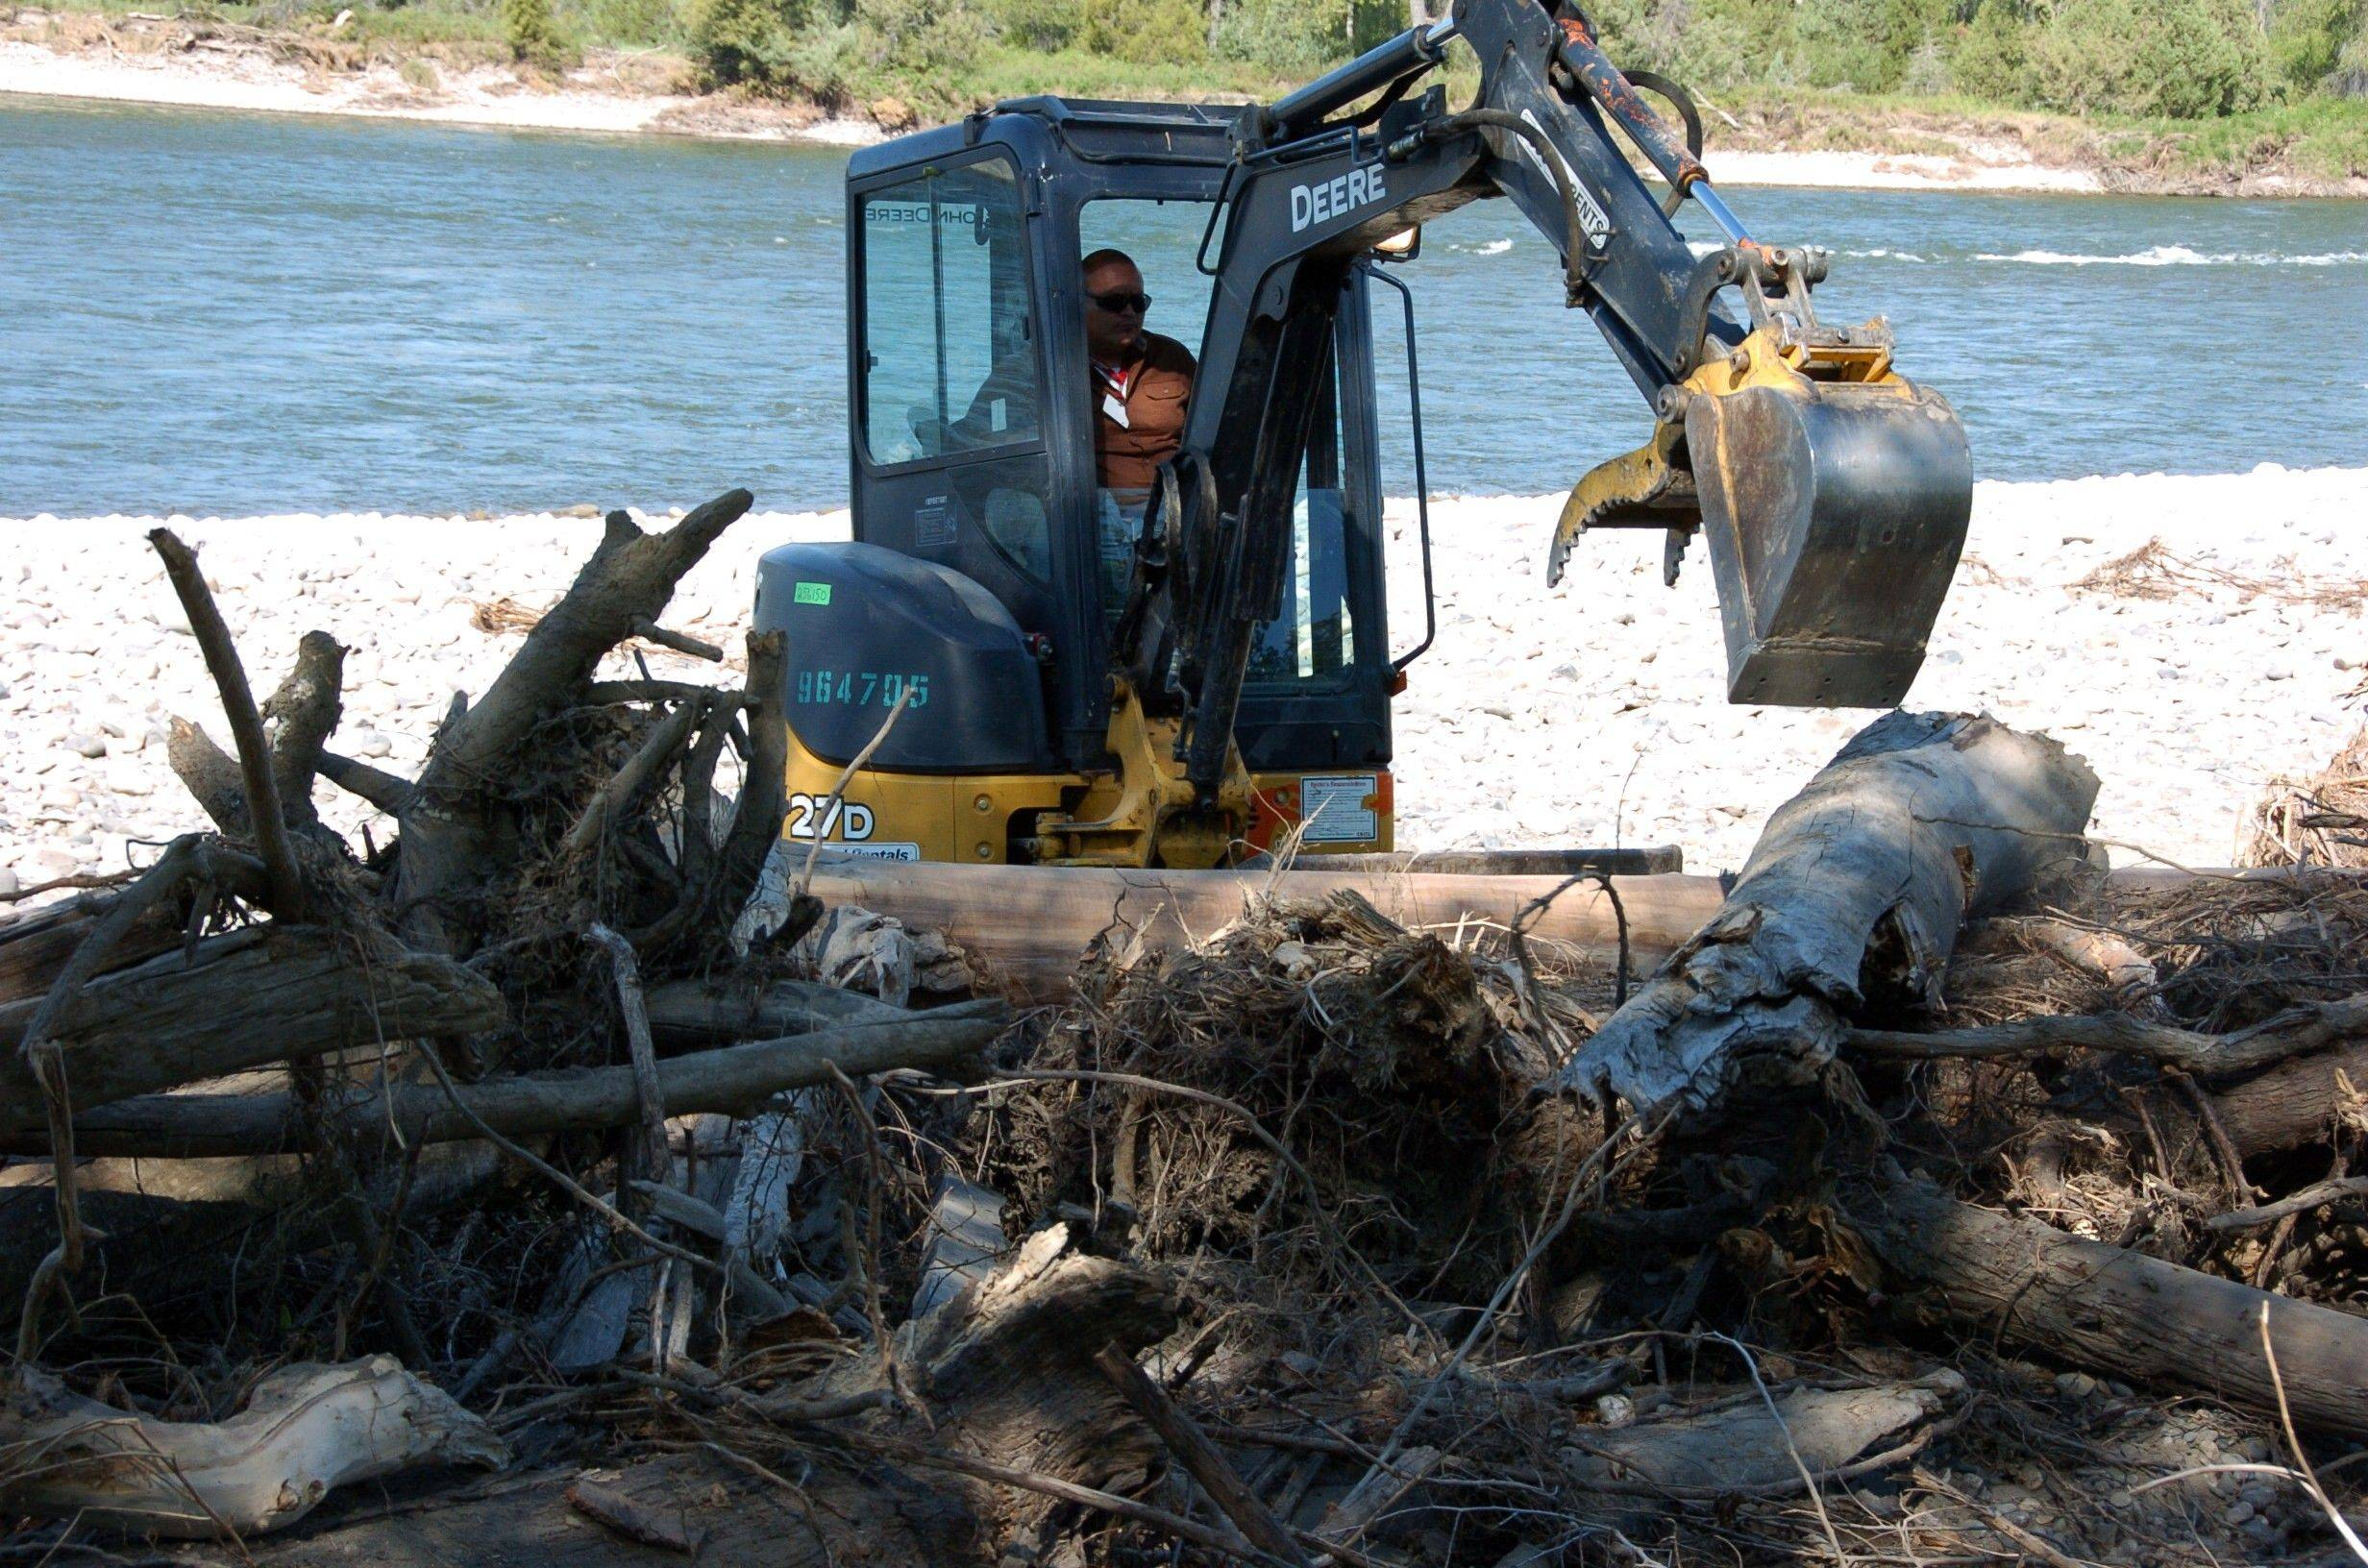 An excavator pulls apart a debris pile along a stretch of the Yellowstone River near Billings, Mont. that was contaminated with oil from a July 1 Exxon Mobil pipeline spill. Hundreds of oil-fouled log jams and debris piles on the river�s banks and islands have slowed cleanup efforts following the 1,000 barrel spill.